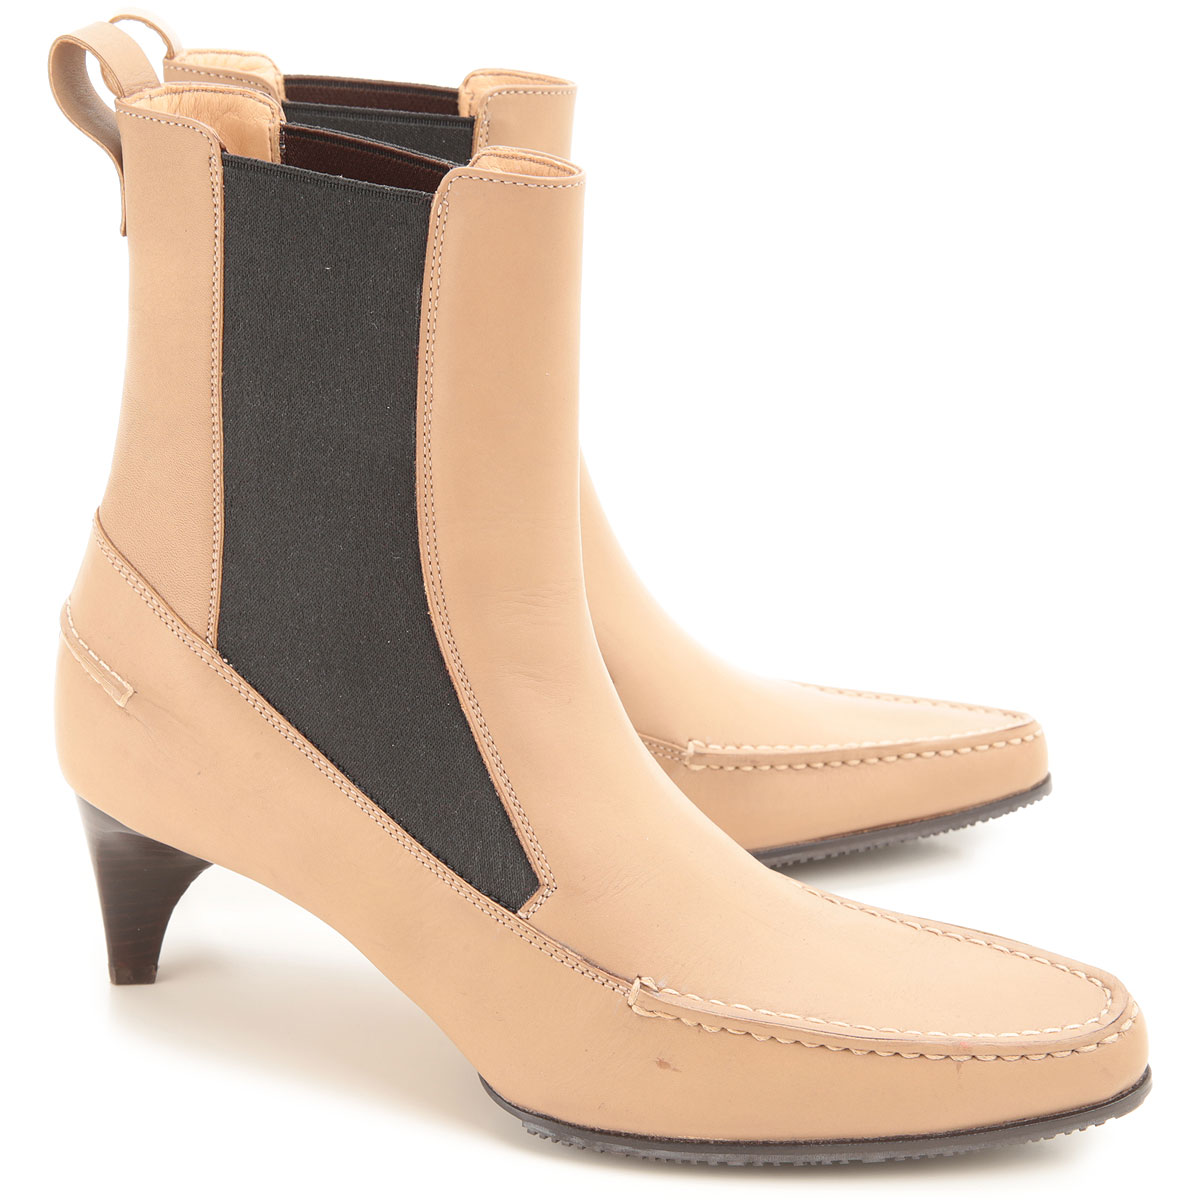 Bally Boots for Women Booties On Sale in Outlet SE - GOOFASH